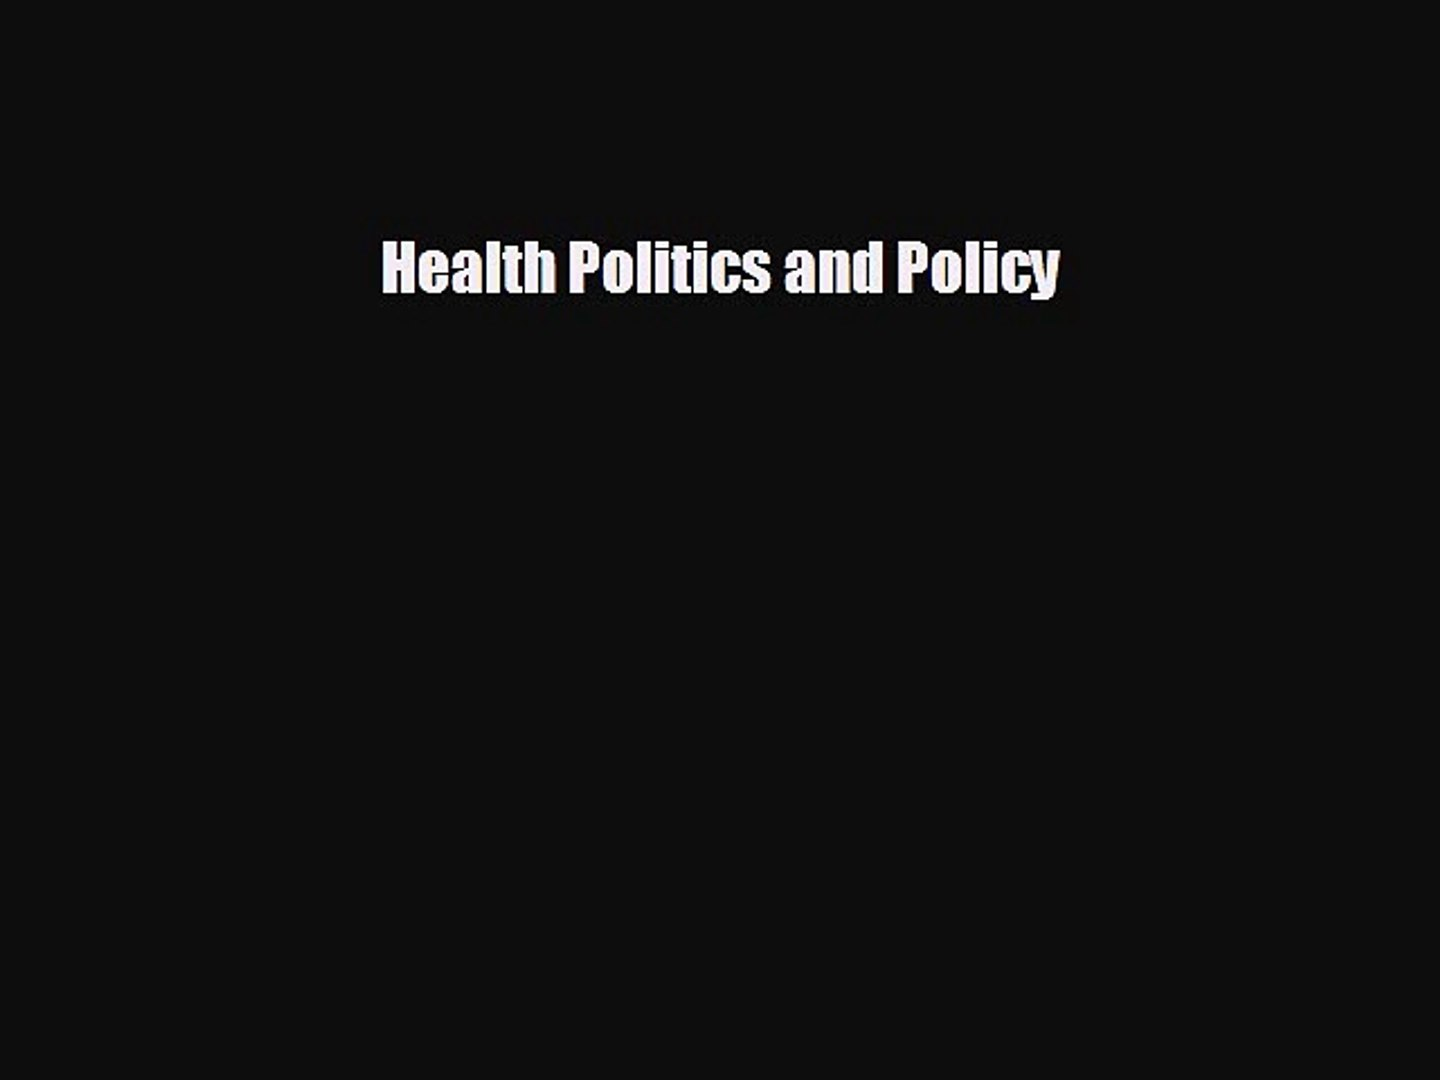 behold Health Politics and Policy